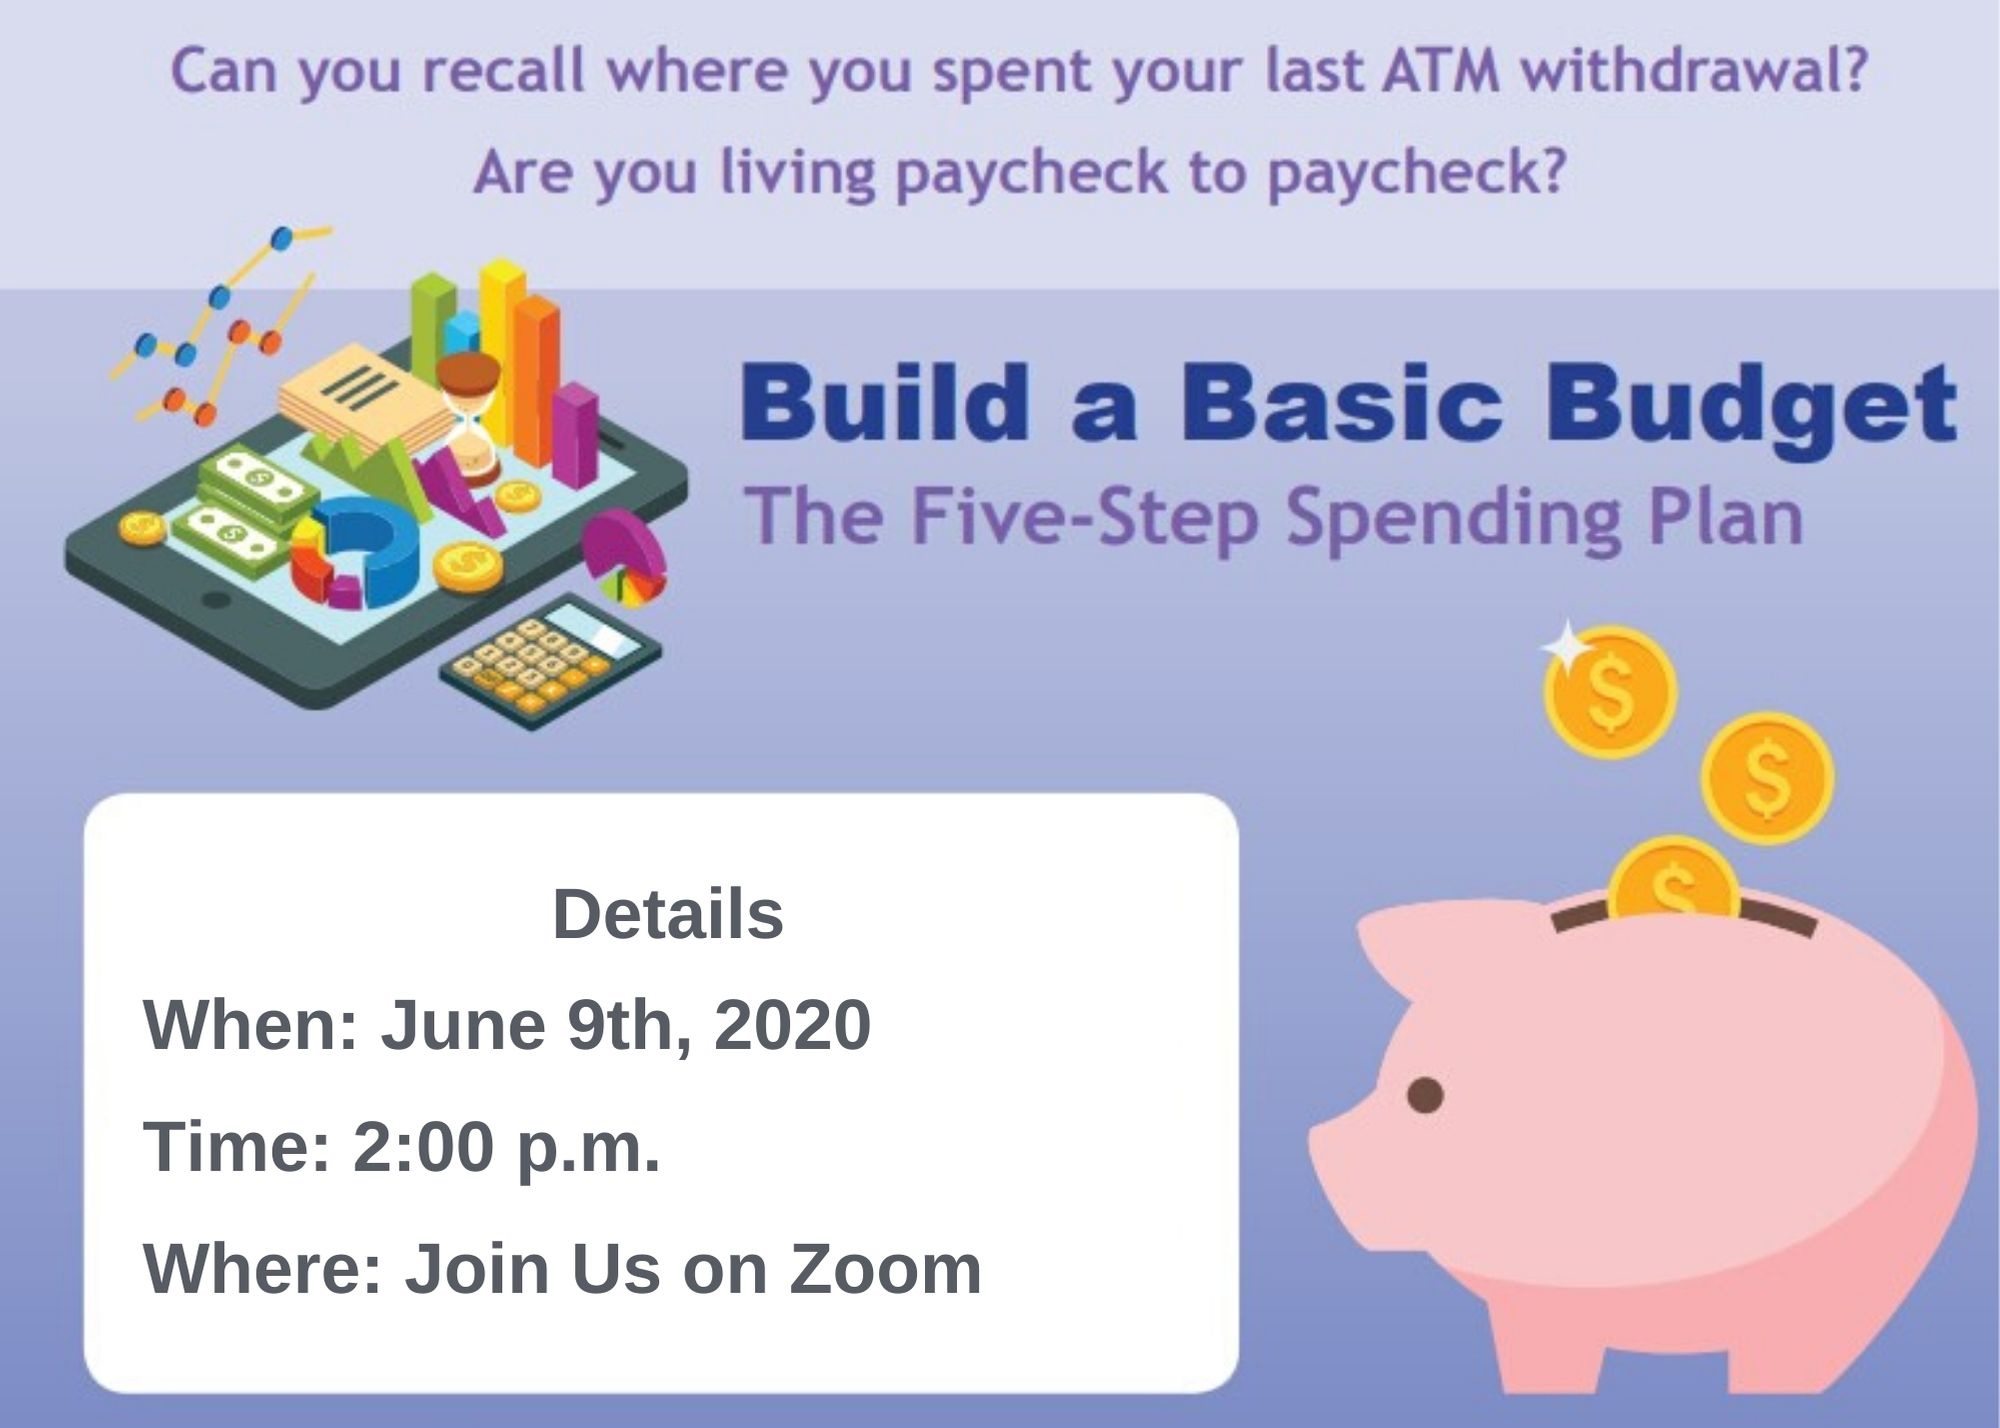 And advertisement for the Build a Basic Budget Event. Includes a budgeting tablet and a piggy bank